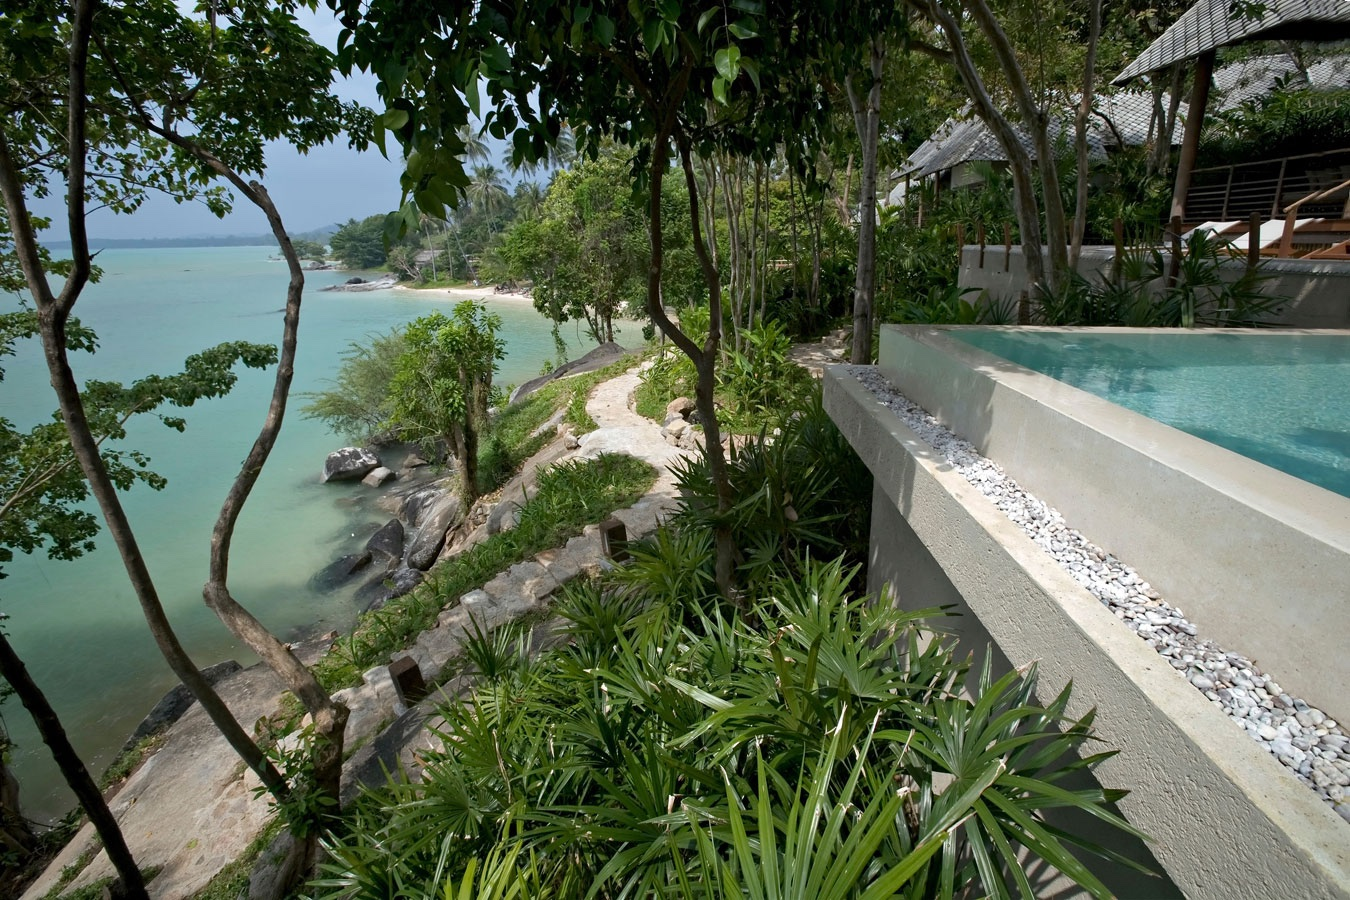 The Resort Is Situated 45 Minutes (approx 25 Km) From Koh Samui Airport,  Which Has Direct Flights From Bangkok, Hong Kong, Singapore And Phuket, ...